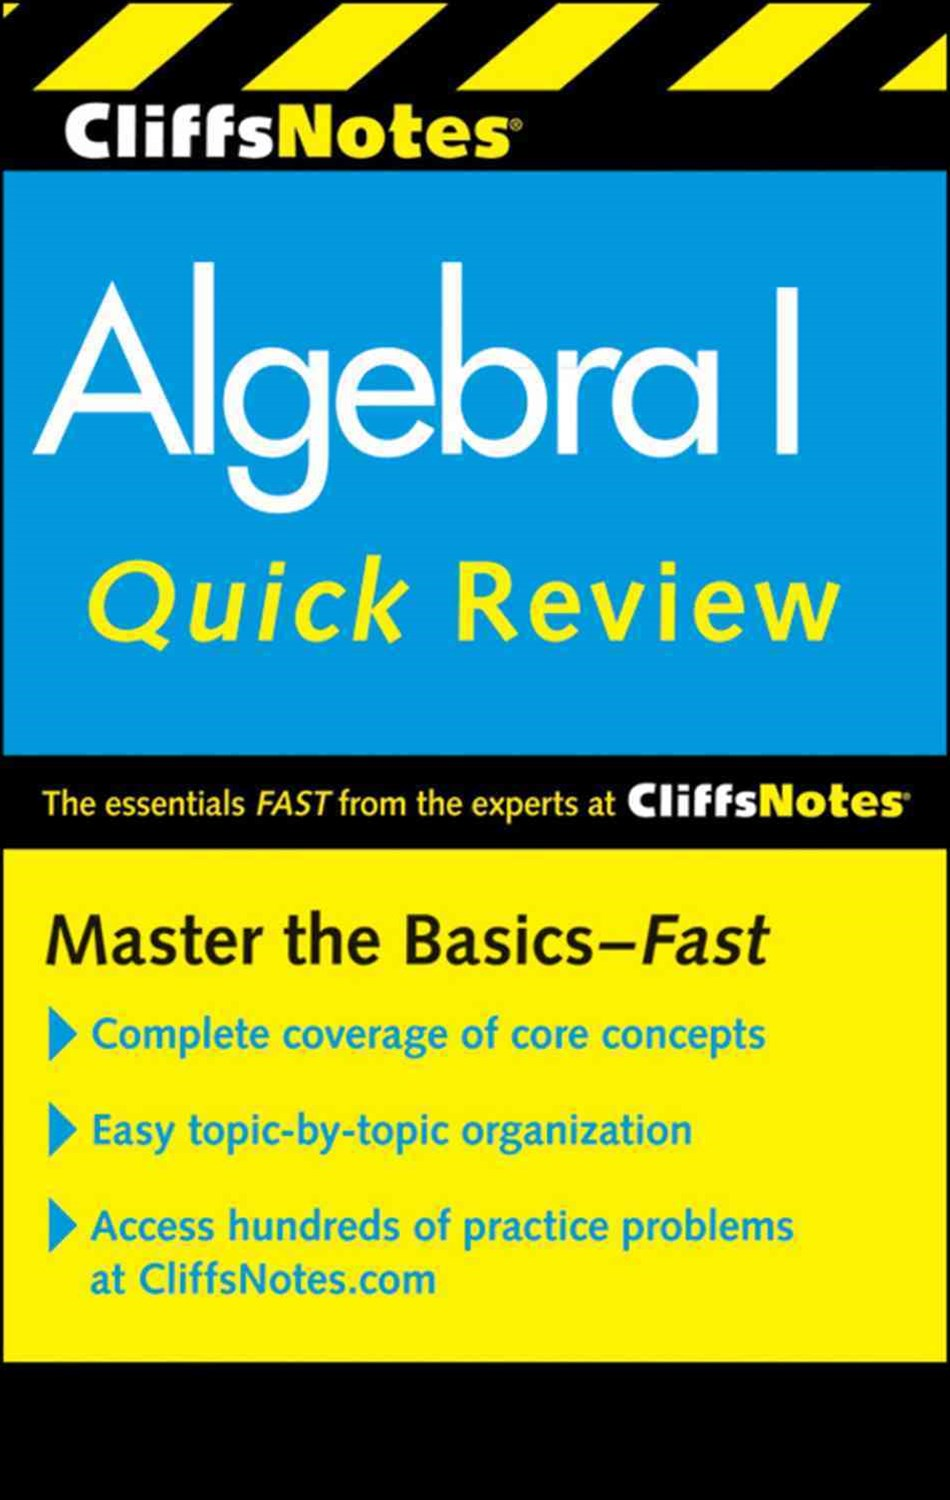 CliffsNotes Algebra I Quick Review: 2nd Edition